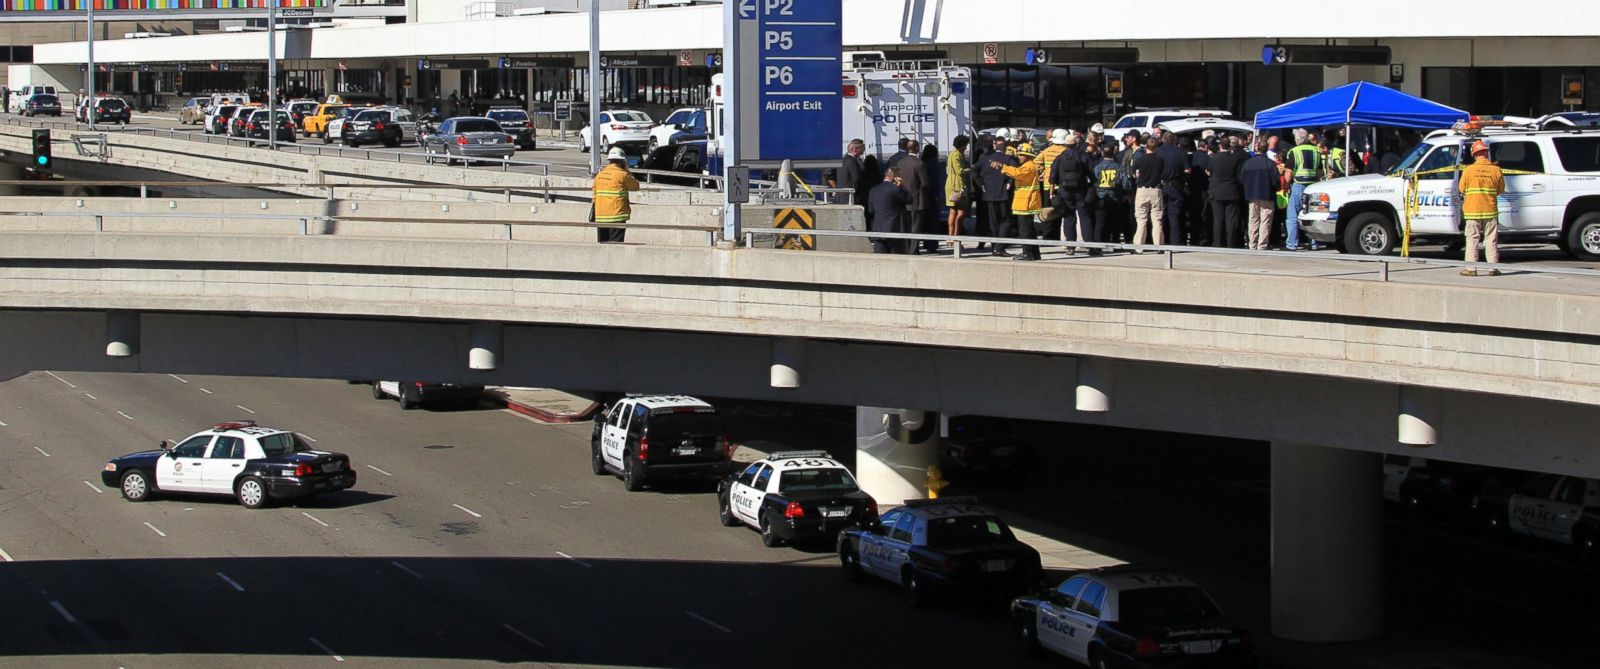 PHOTO: Police, emergency response vehicles and officials are positioned outside Terminal 3 at Los Angeles International Airport on Nov. 1, 2013 where shots were fired, prompting authorities to evacuate a terminal and stop flights.